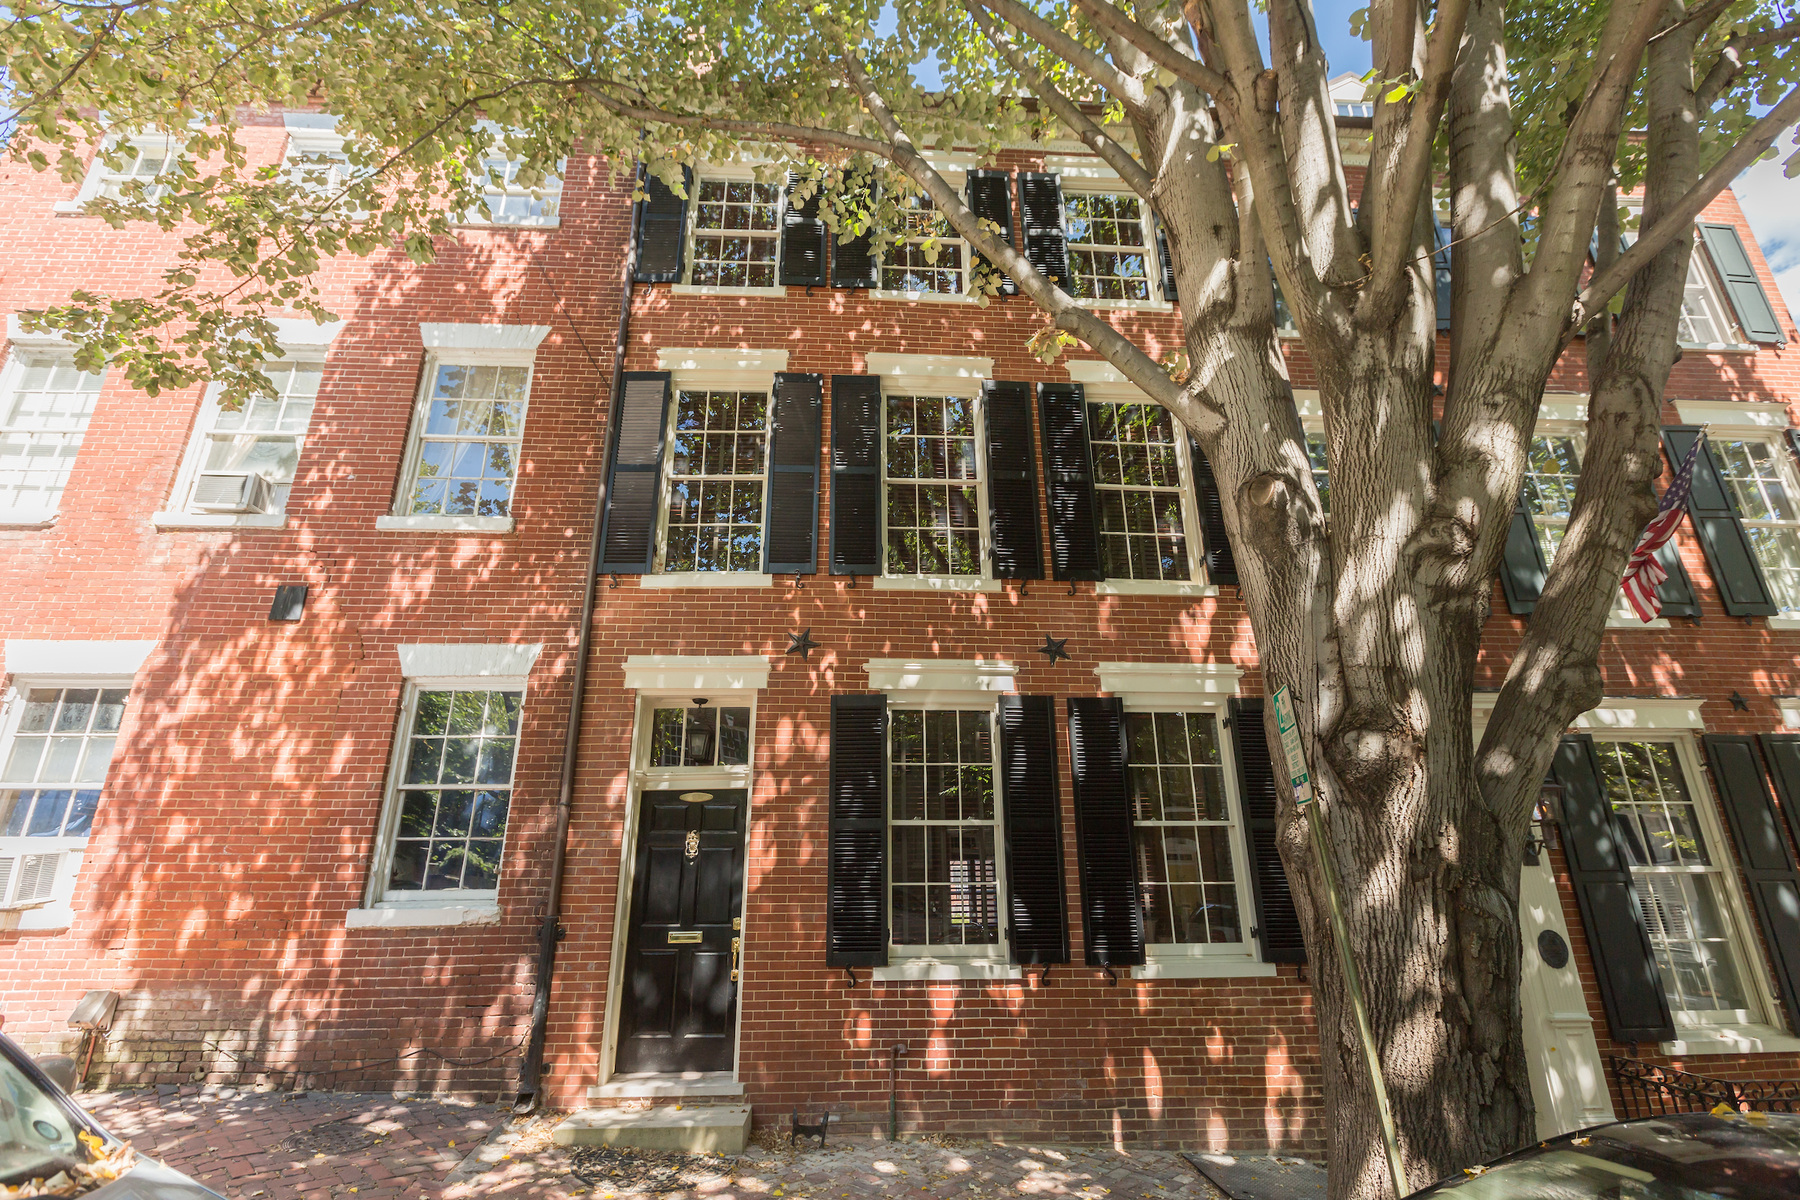 Townhouse for Sale at Old Town 117 Prince St Alexandria, Virginia 22314 United States